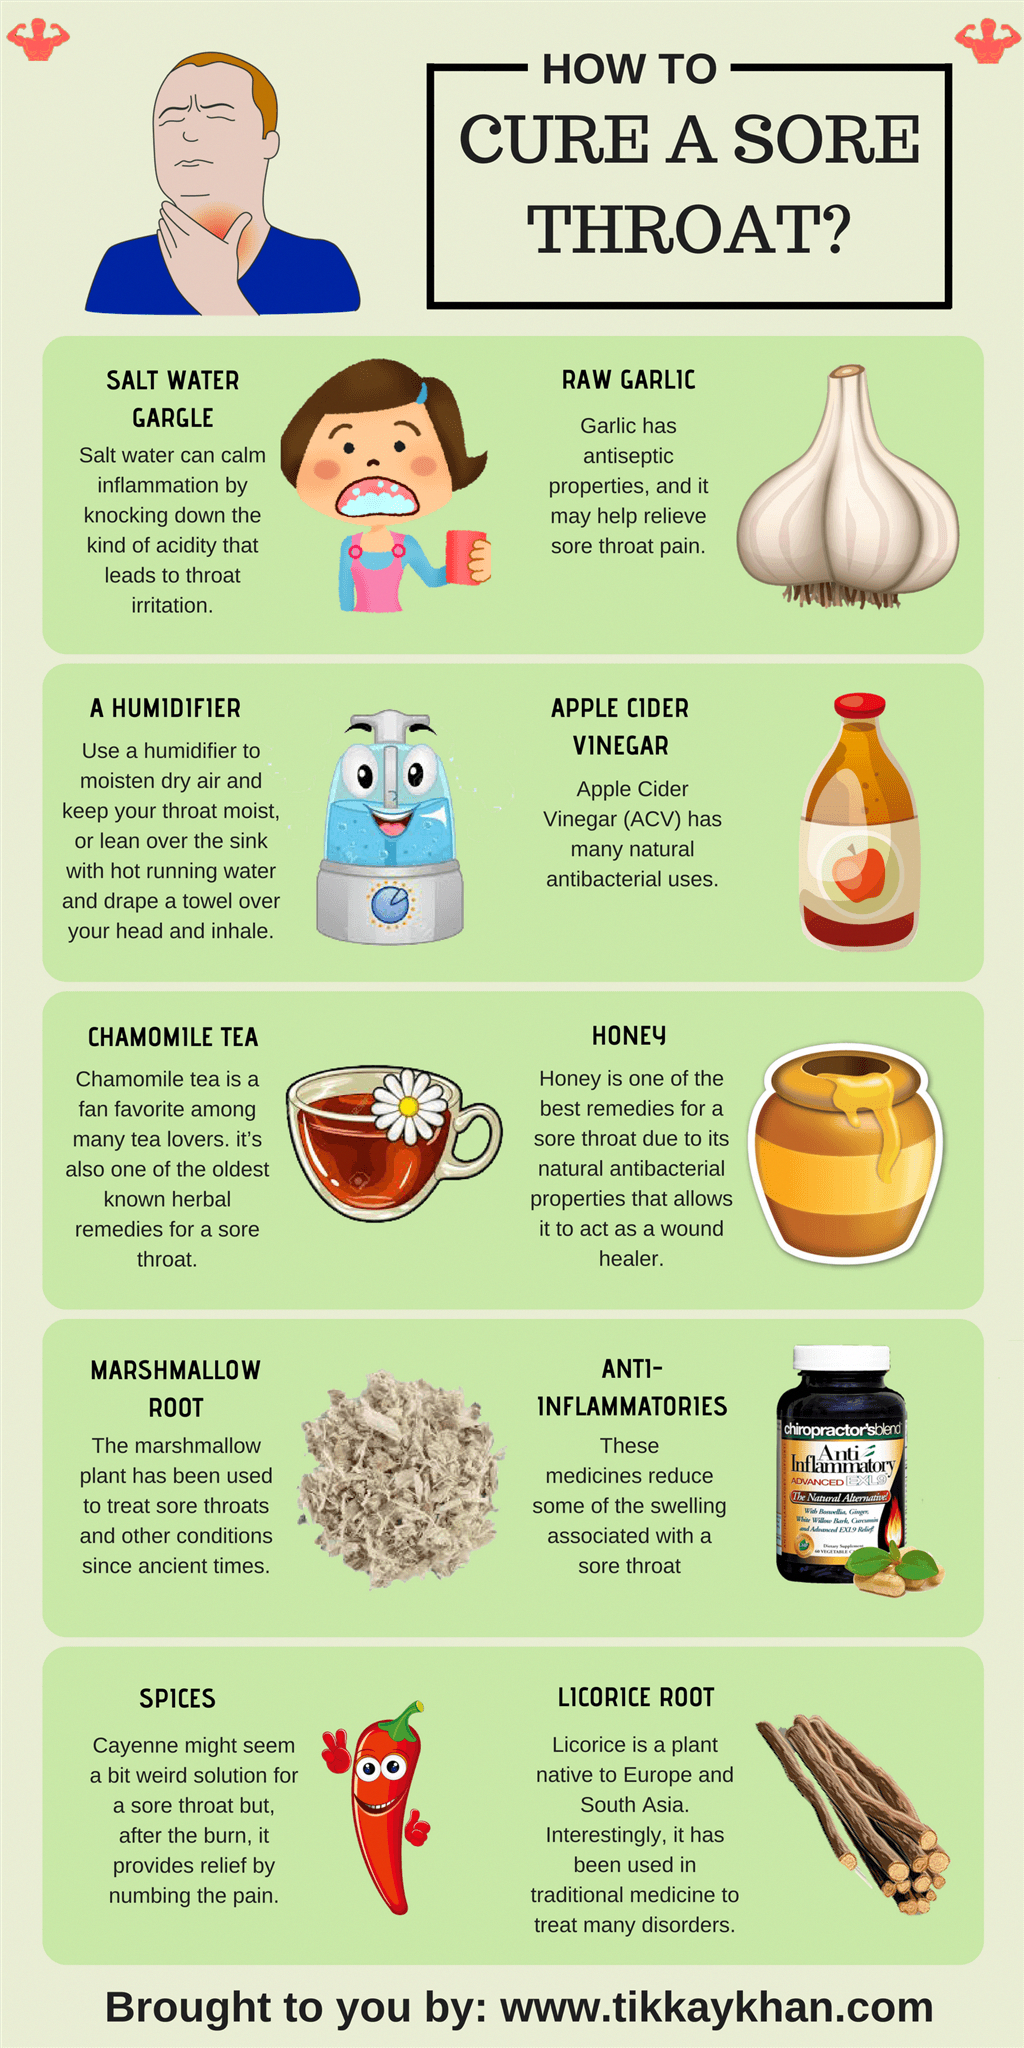 17ed758b939476a8e60f0ebf66cfc993 - How To Get Over A Cough And Sore Throat